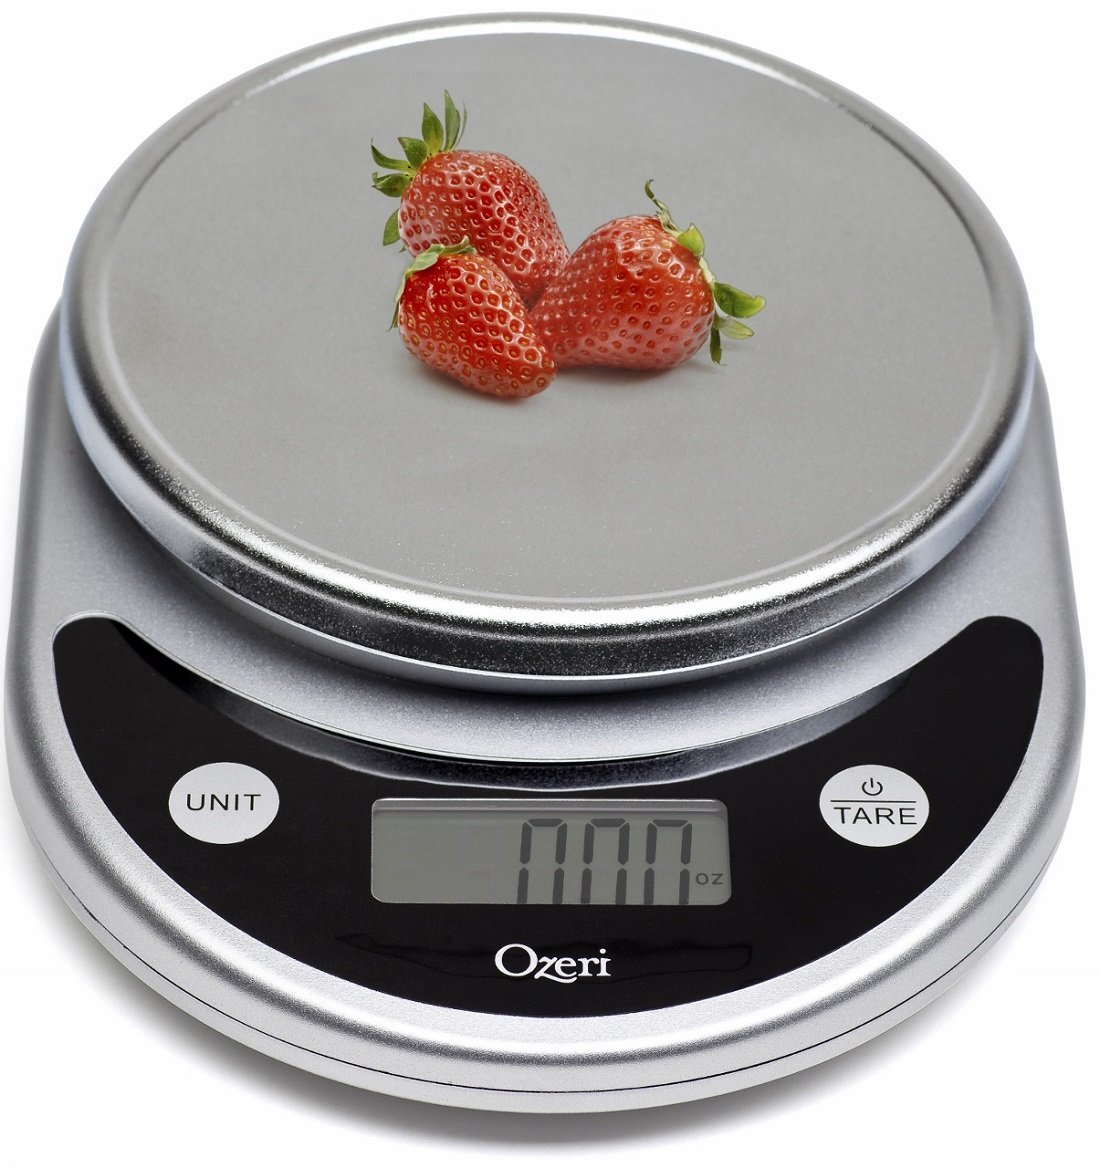 digital multifunction kitchen and food scale4